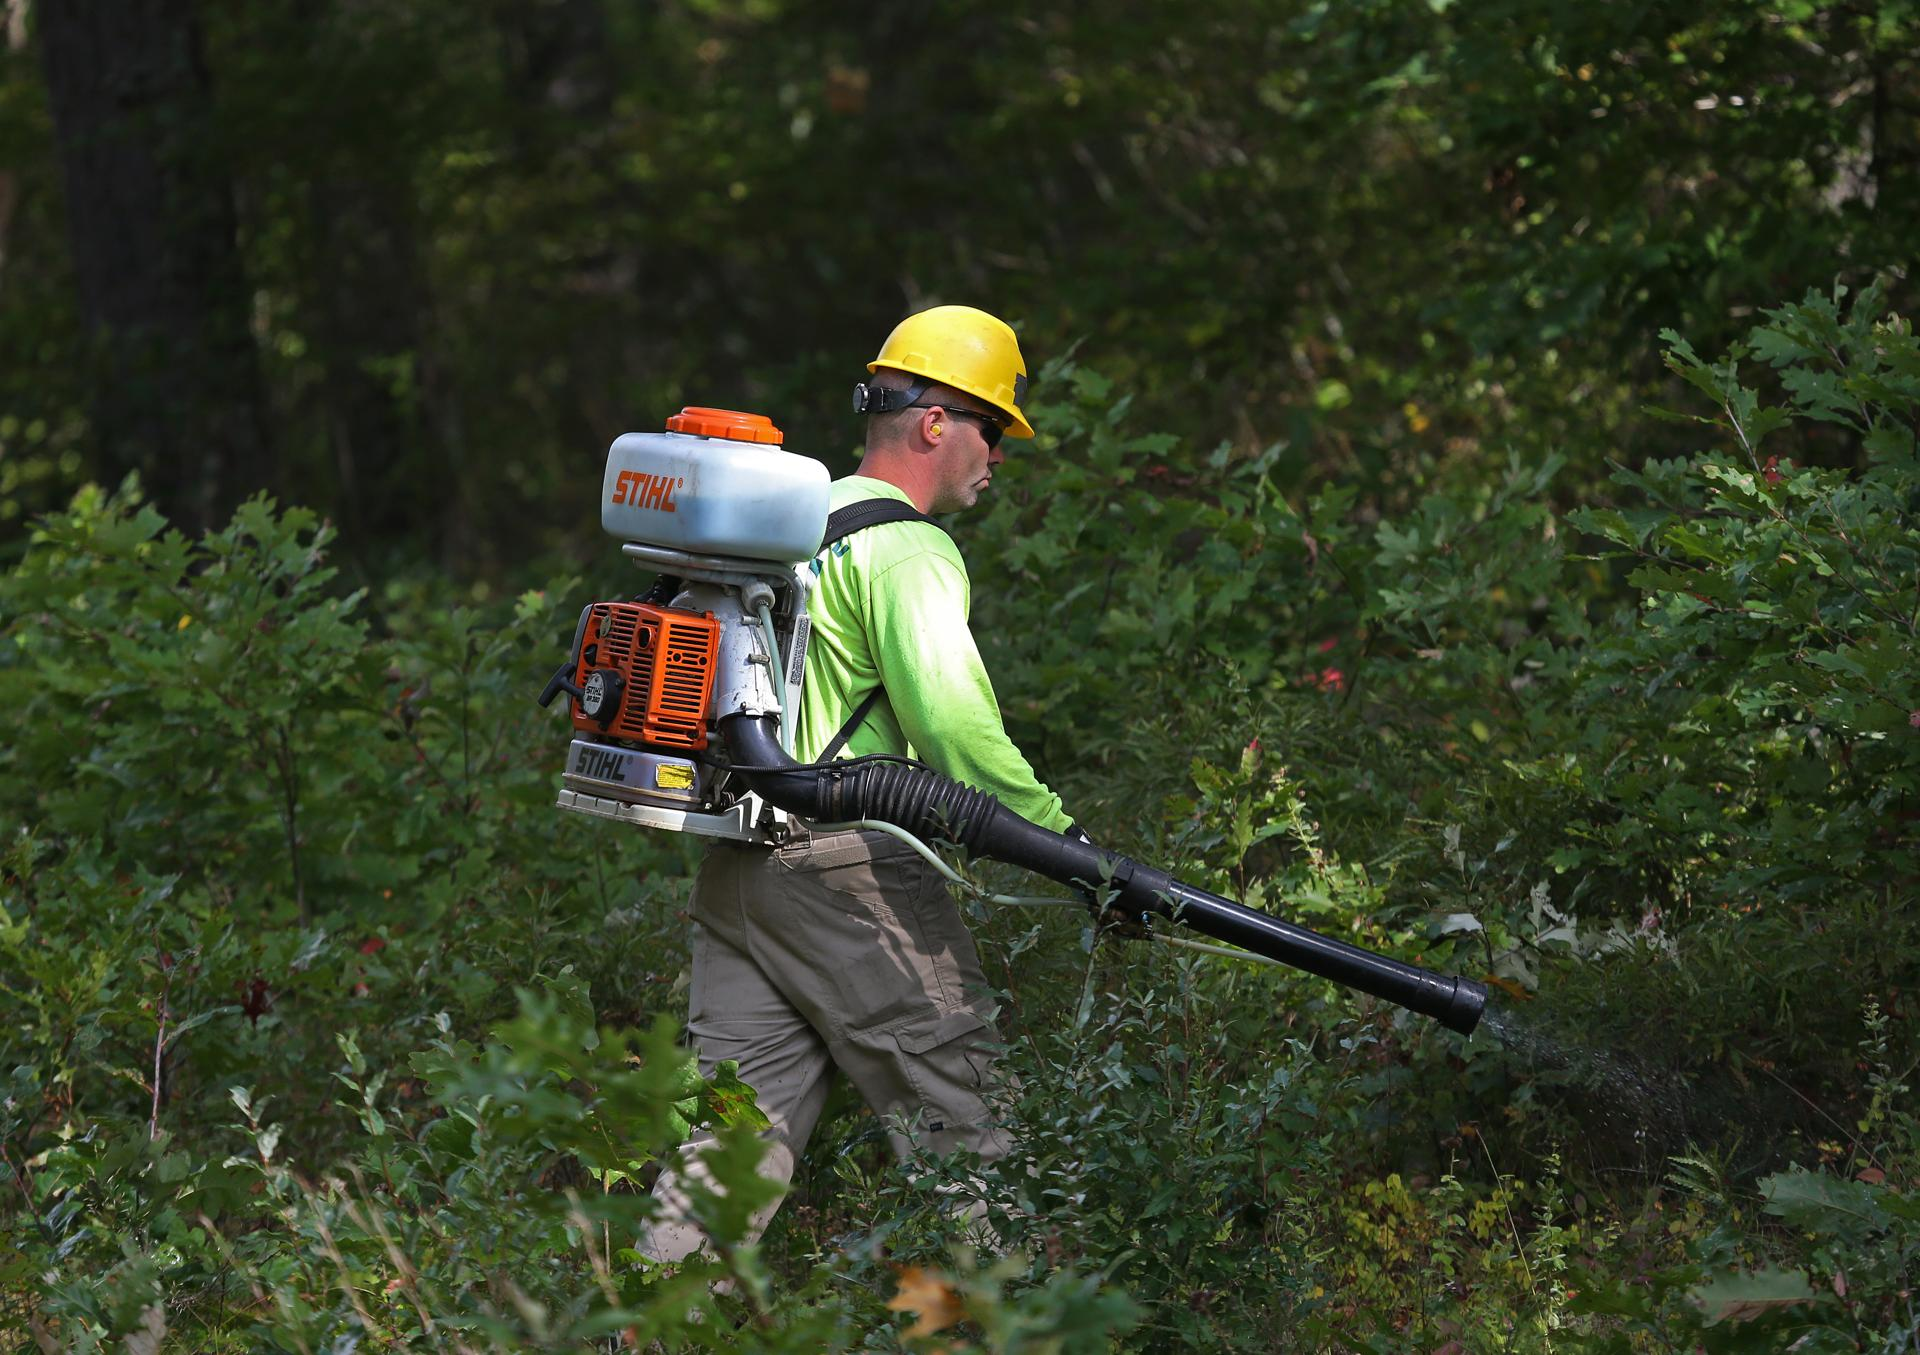 NStar says the state-sanctioned spraying is safe and the most effective means of managing the growth of trees on their property.